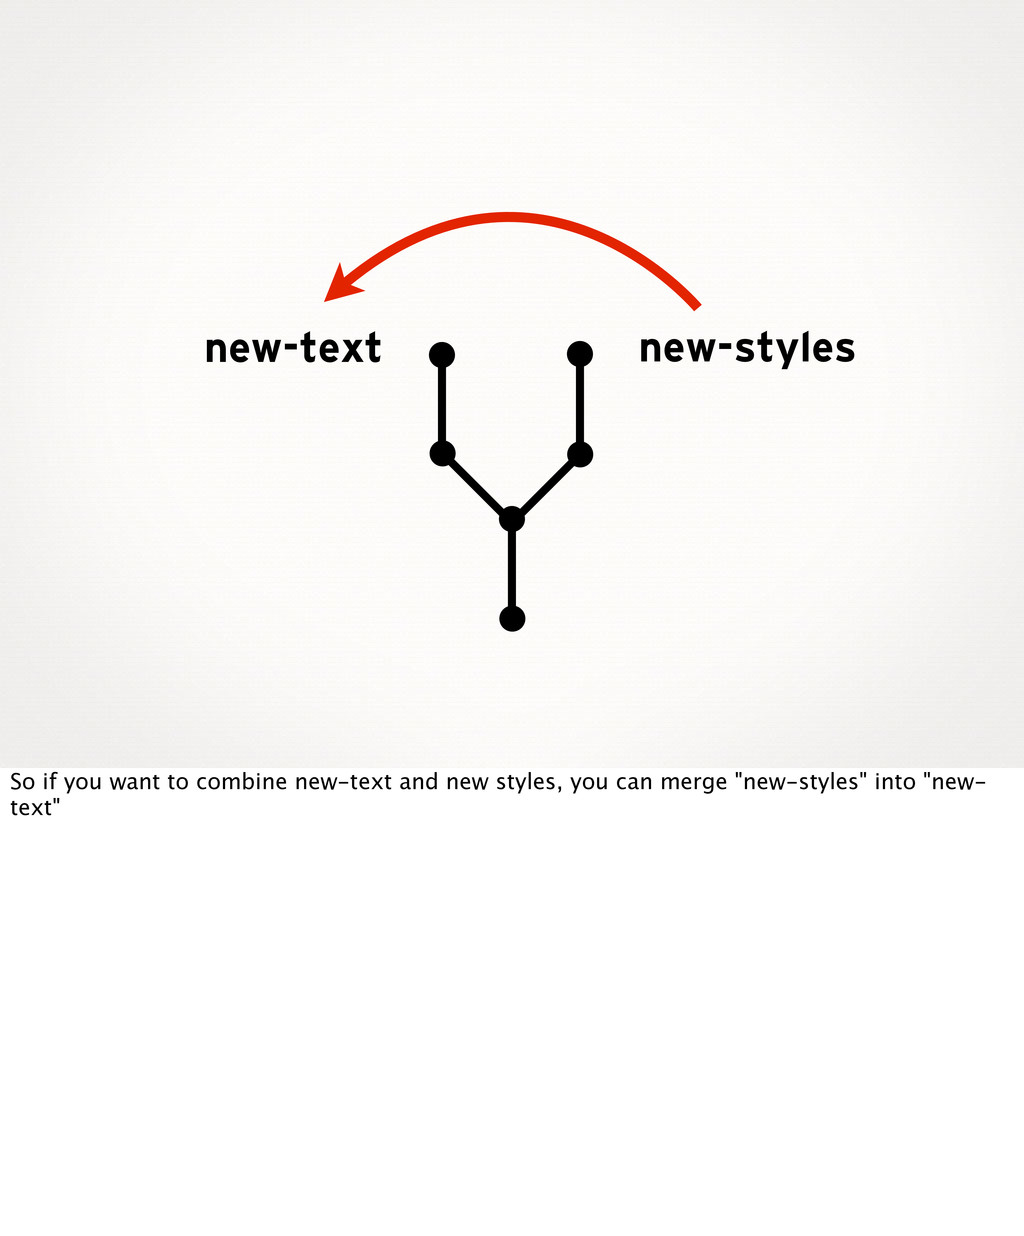 new-styles new-text So if you want to combine n...